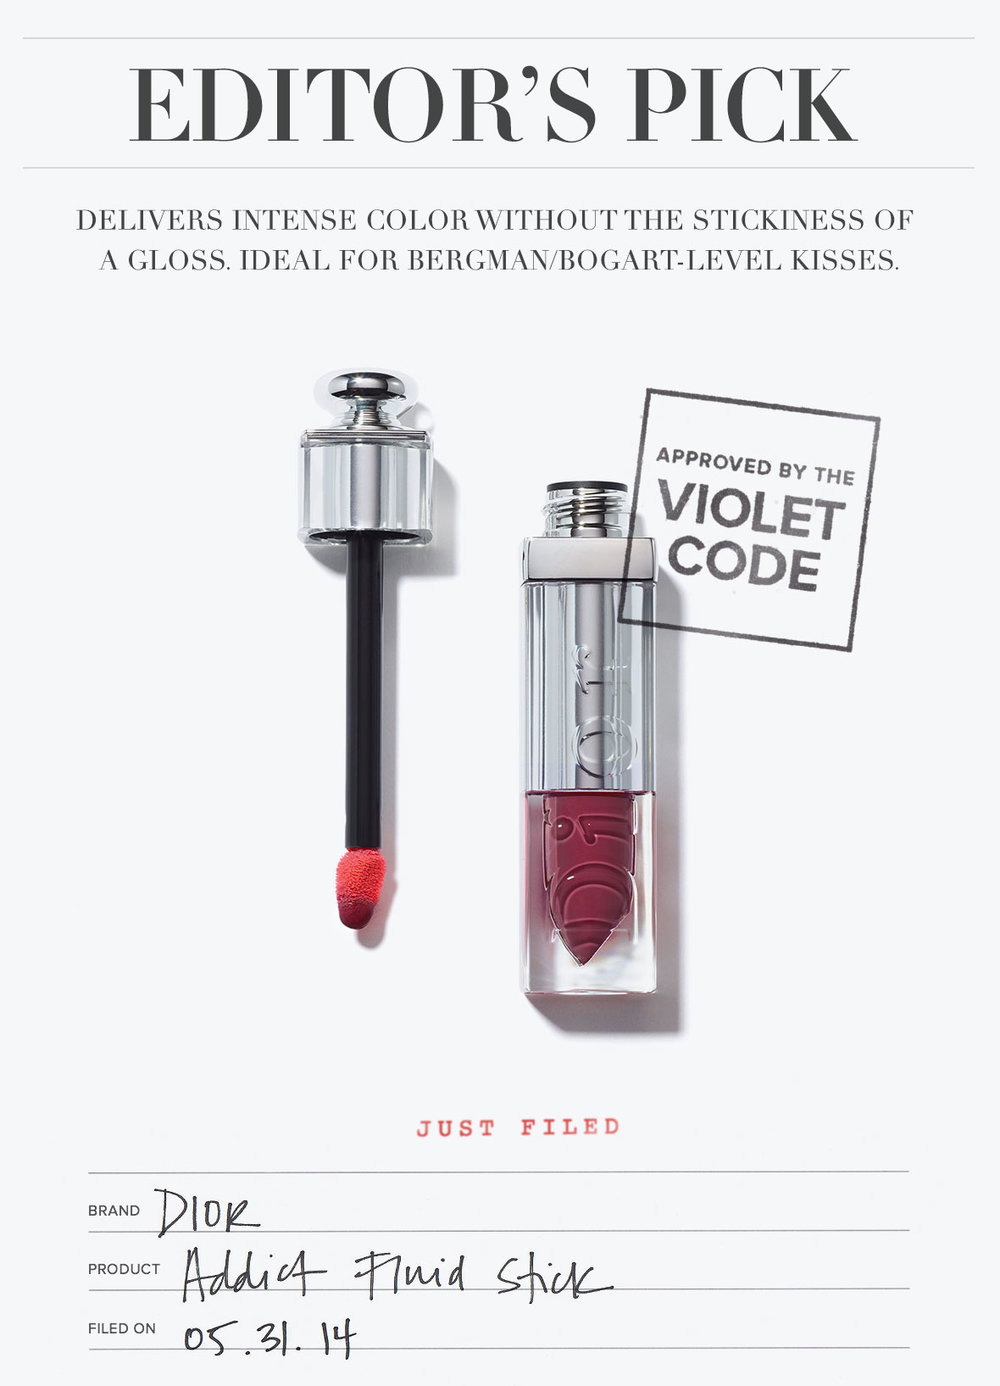 Dior-Addict-Fluid-Stick-Email.jpg